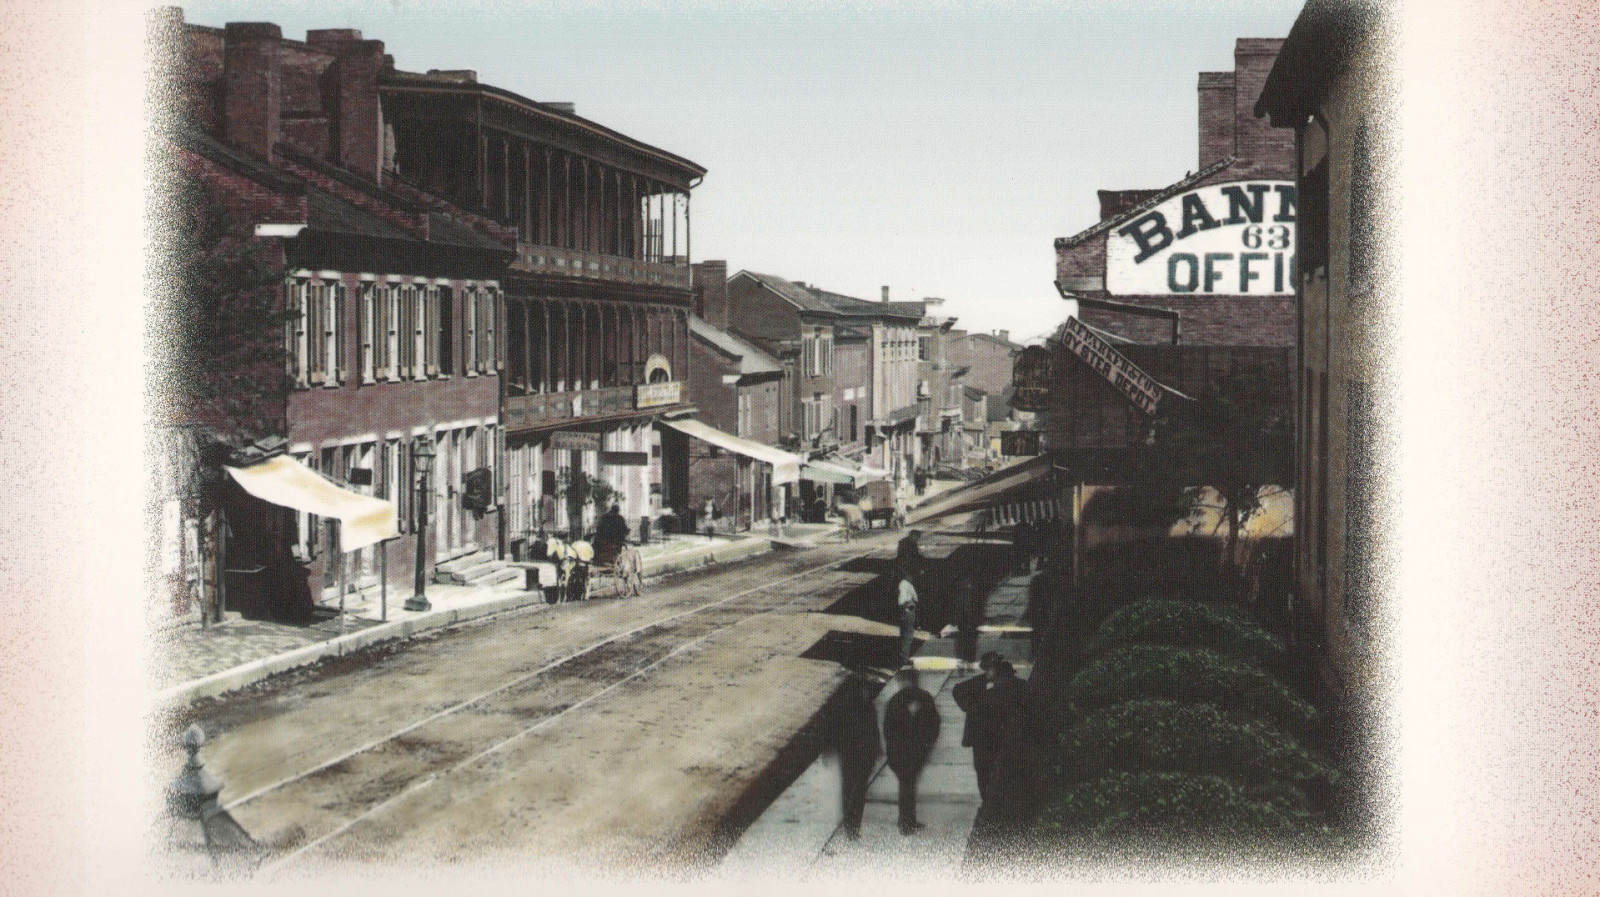 4th Ave in 1870s